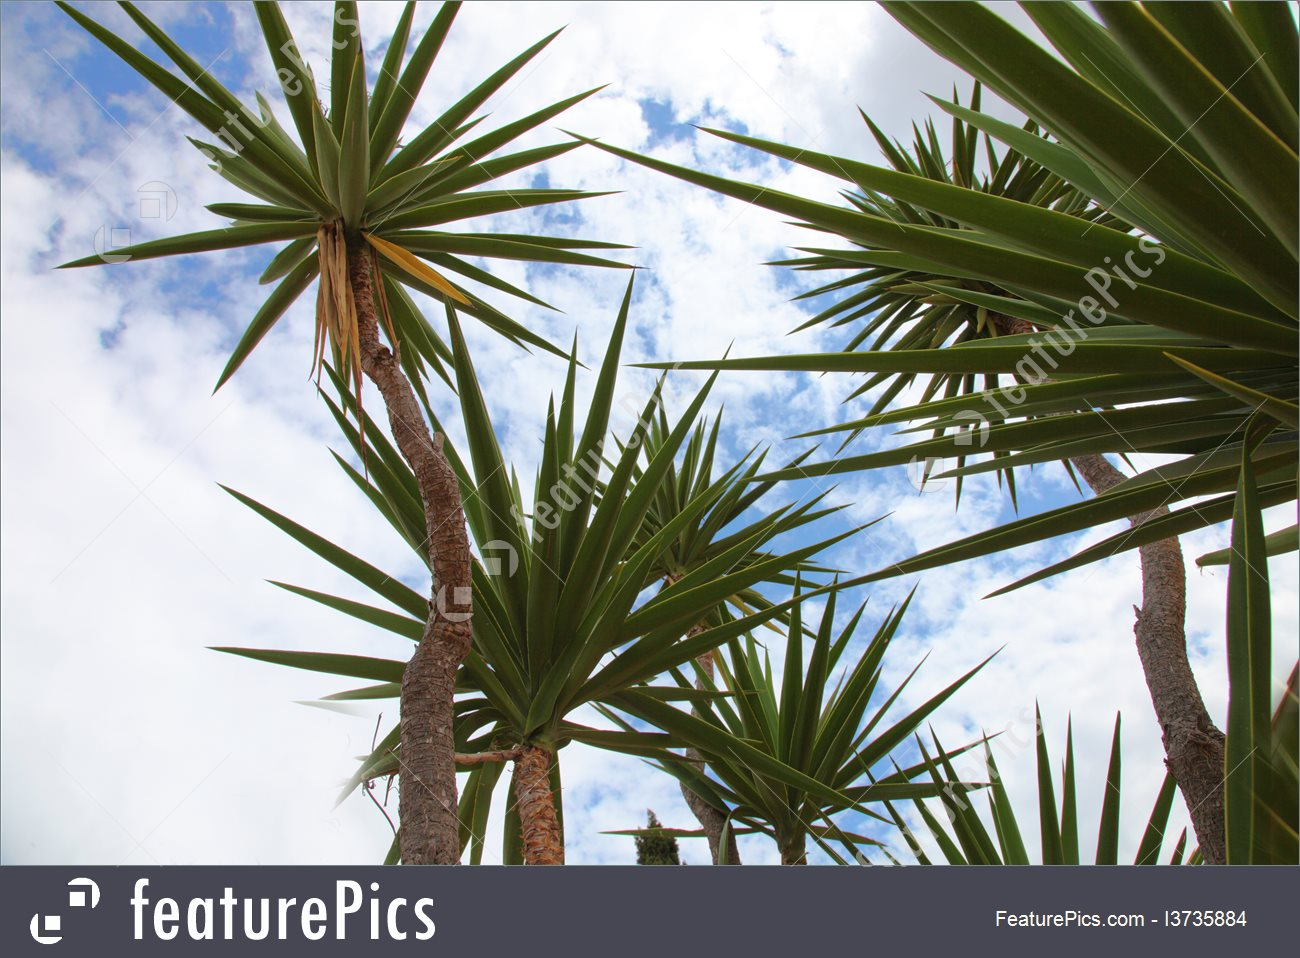 Tropical Palm Trees Image.